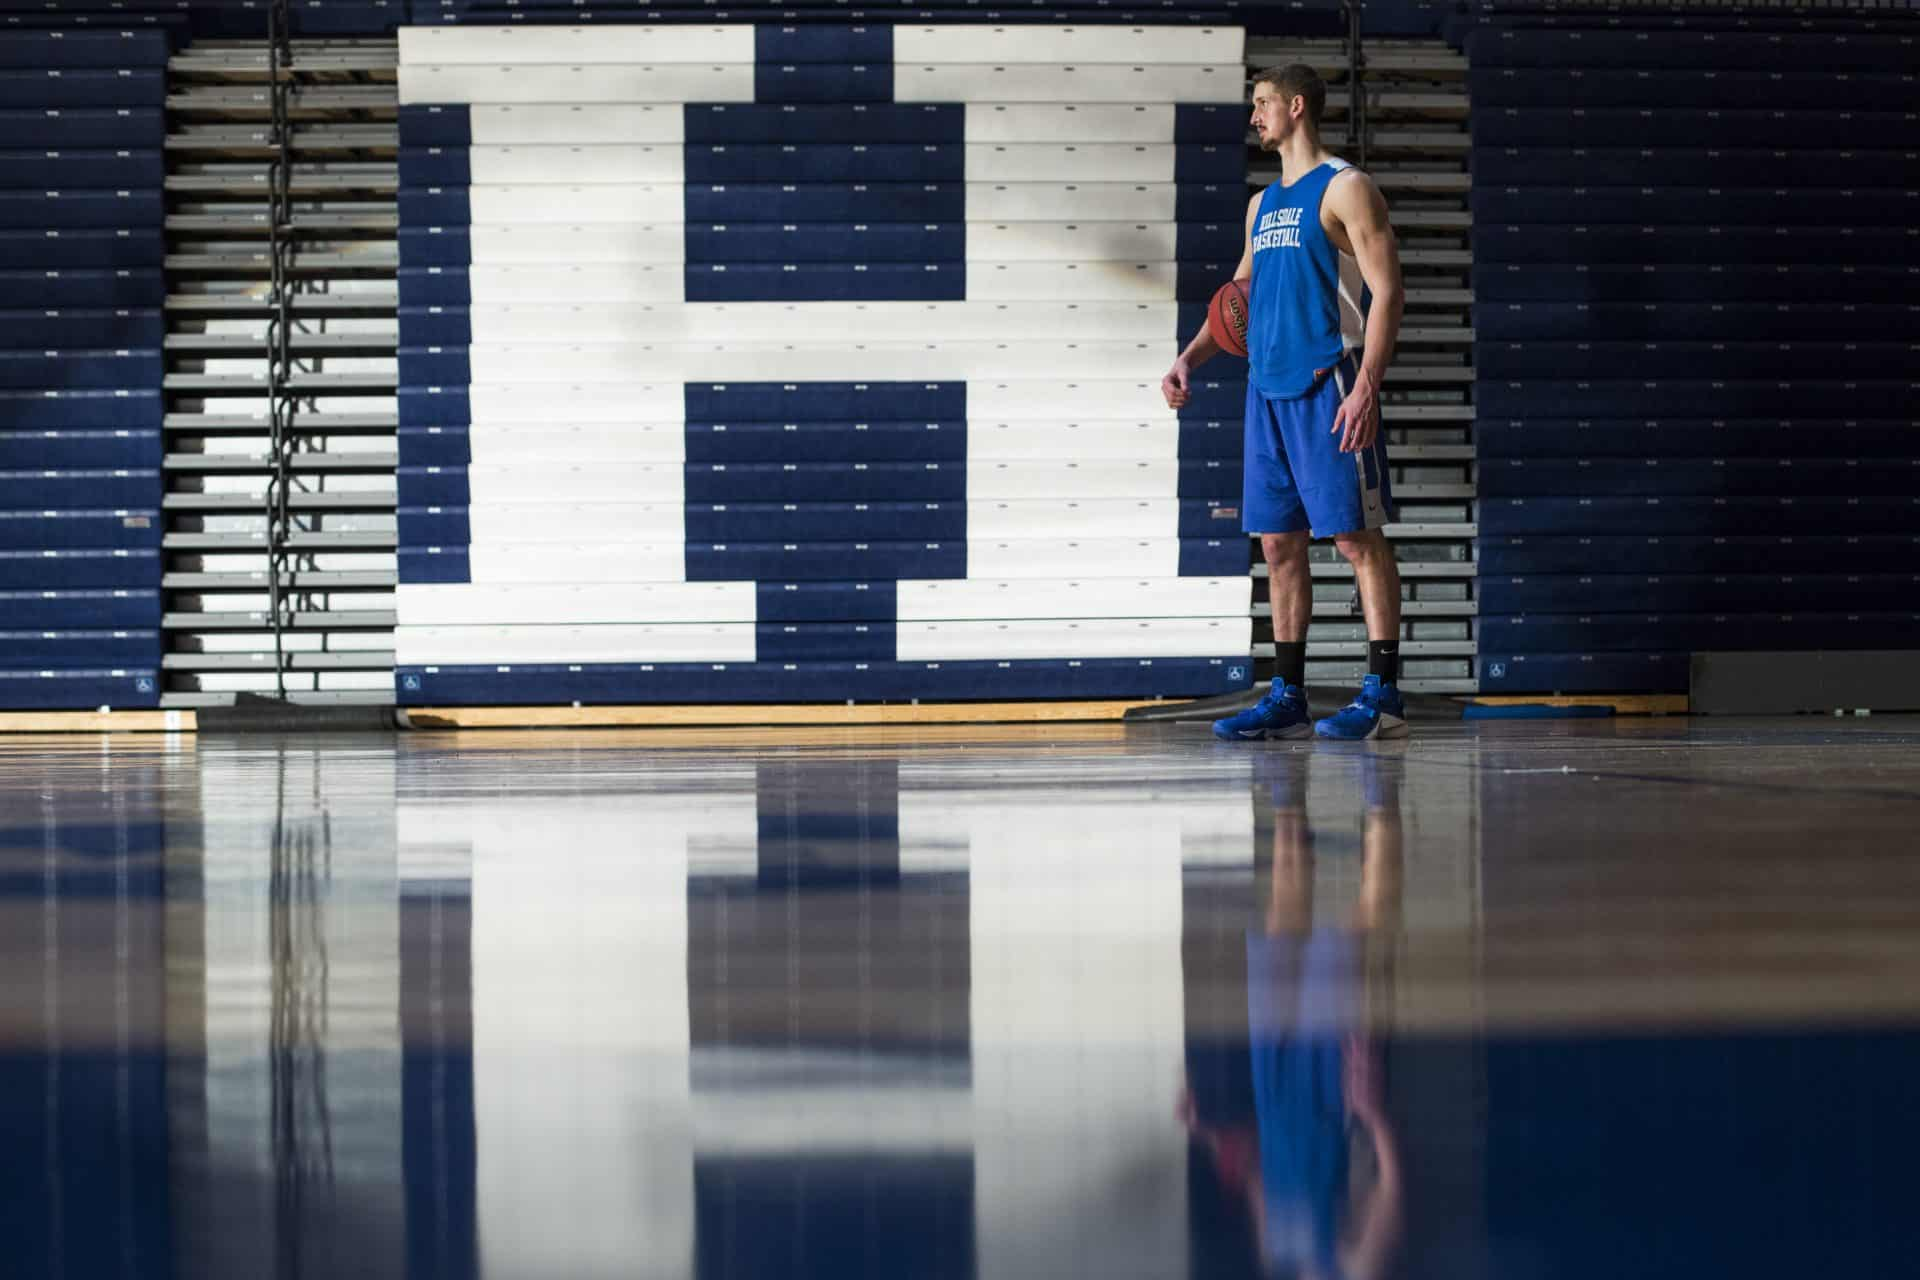 Kyle Cooper Hillsdale College Charger Basketball